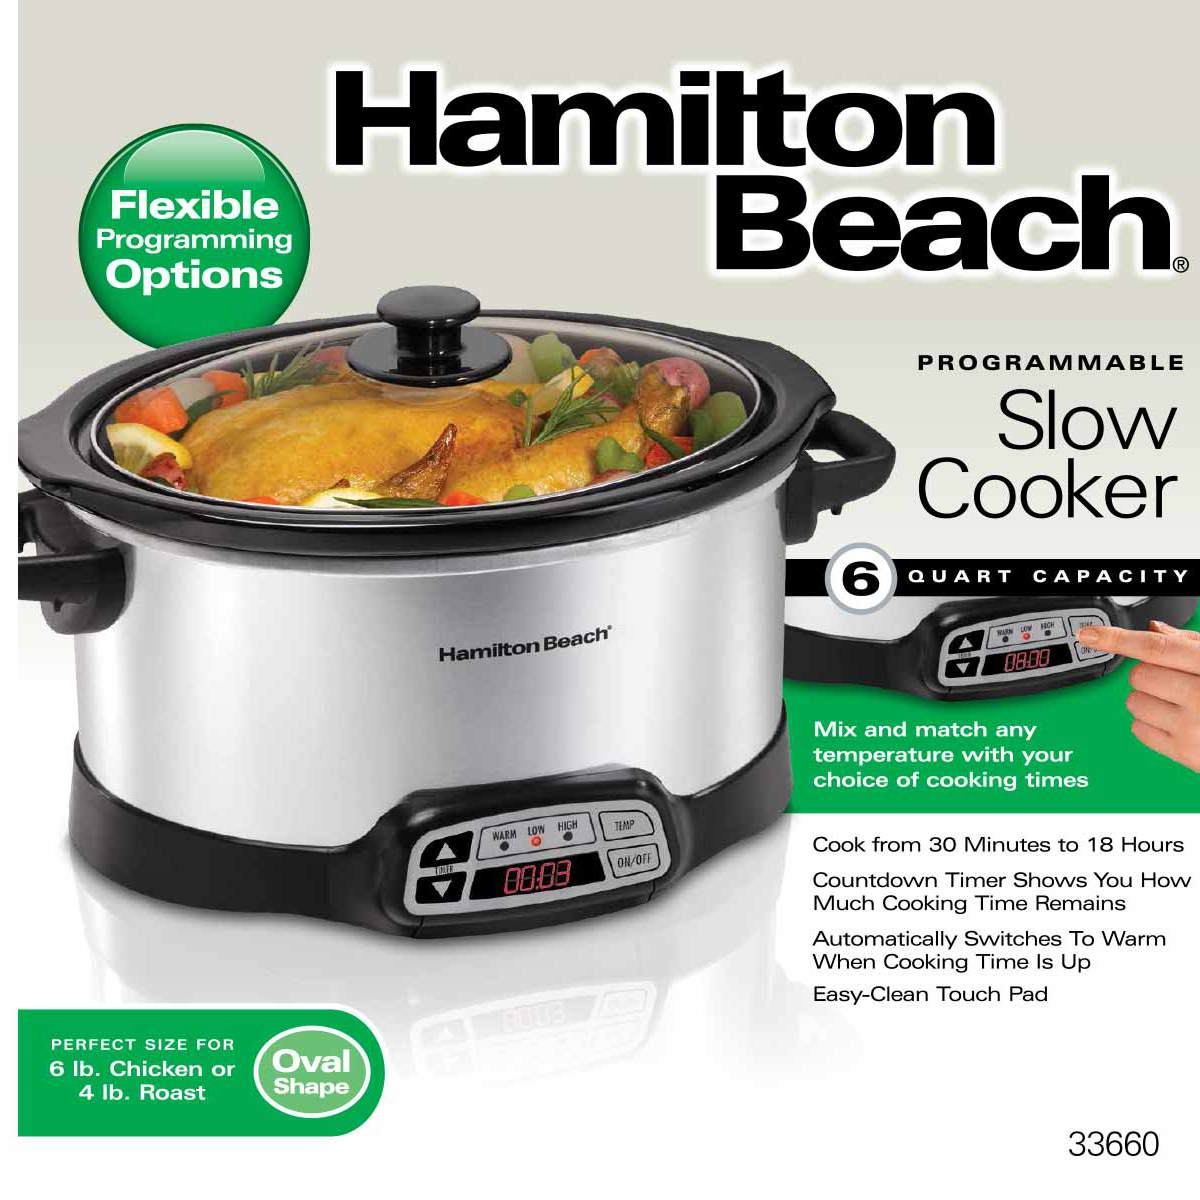 Programmable 6 Quart Slow Cooker (33660)